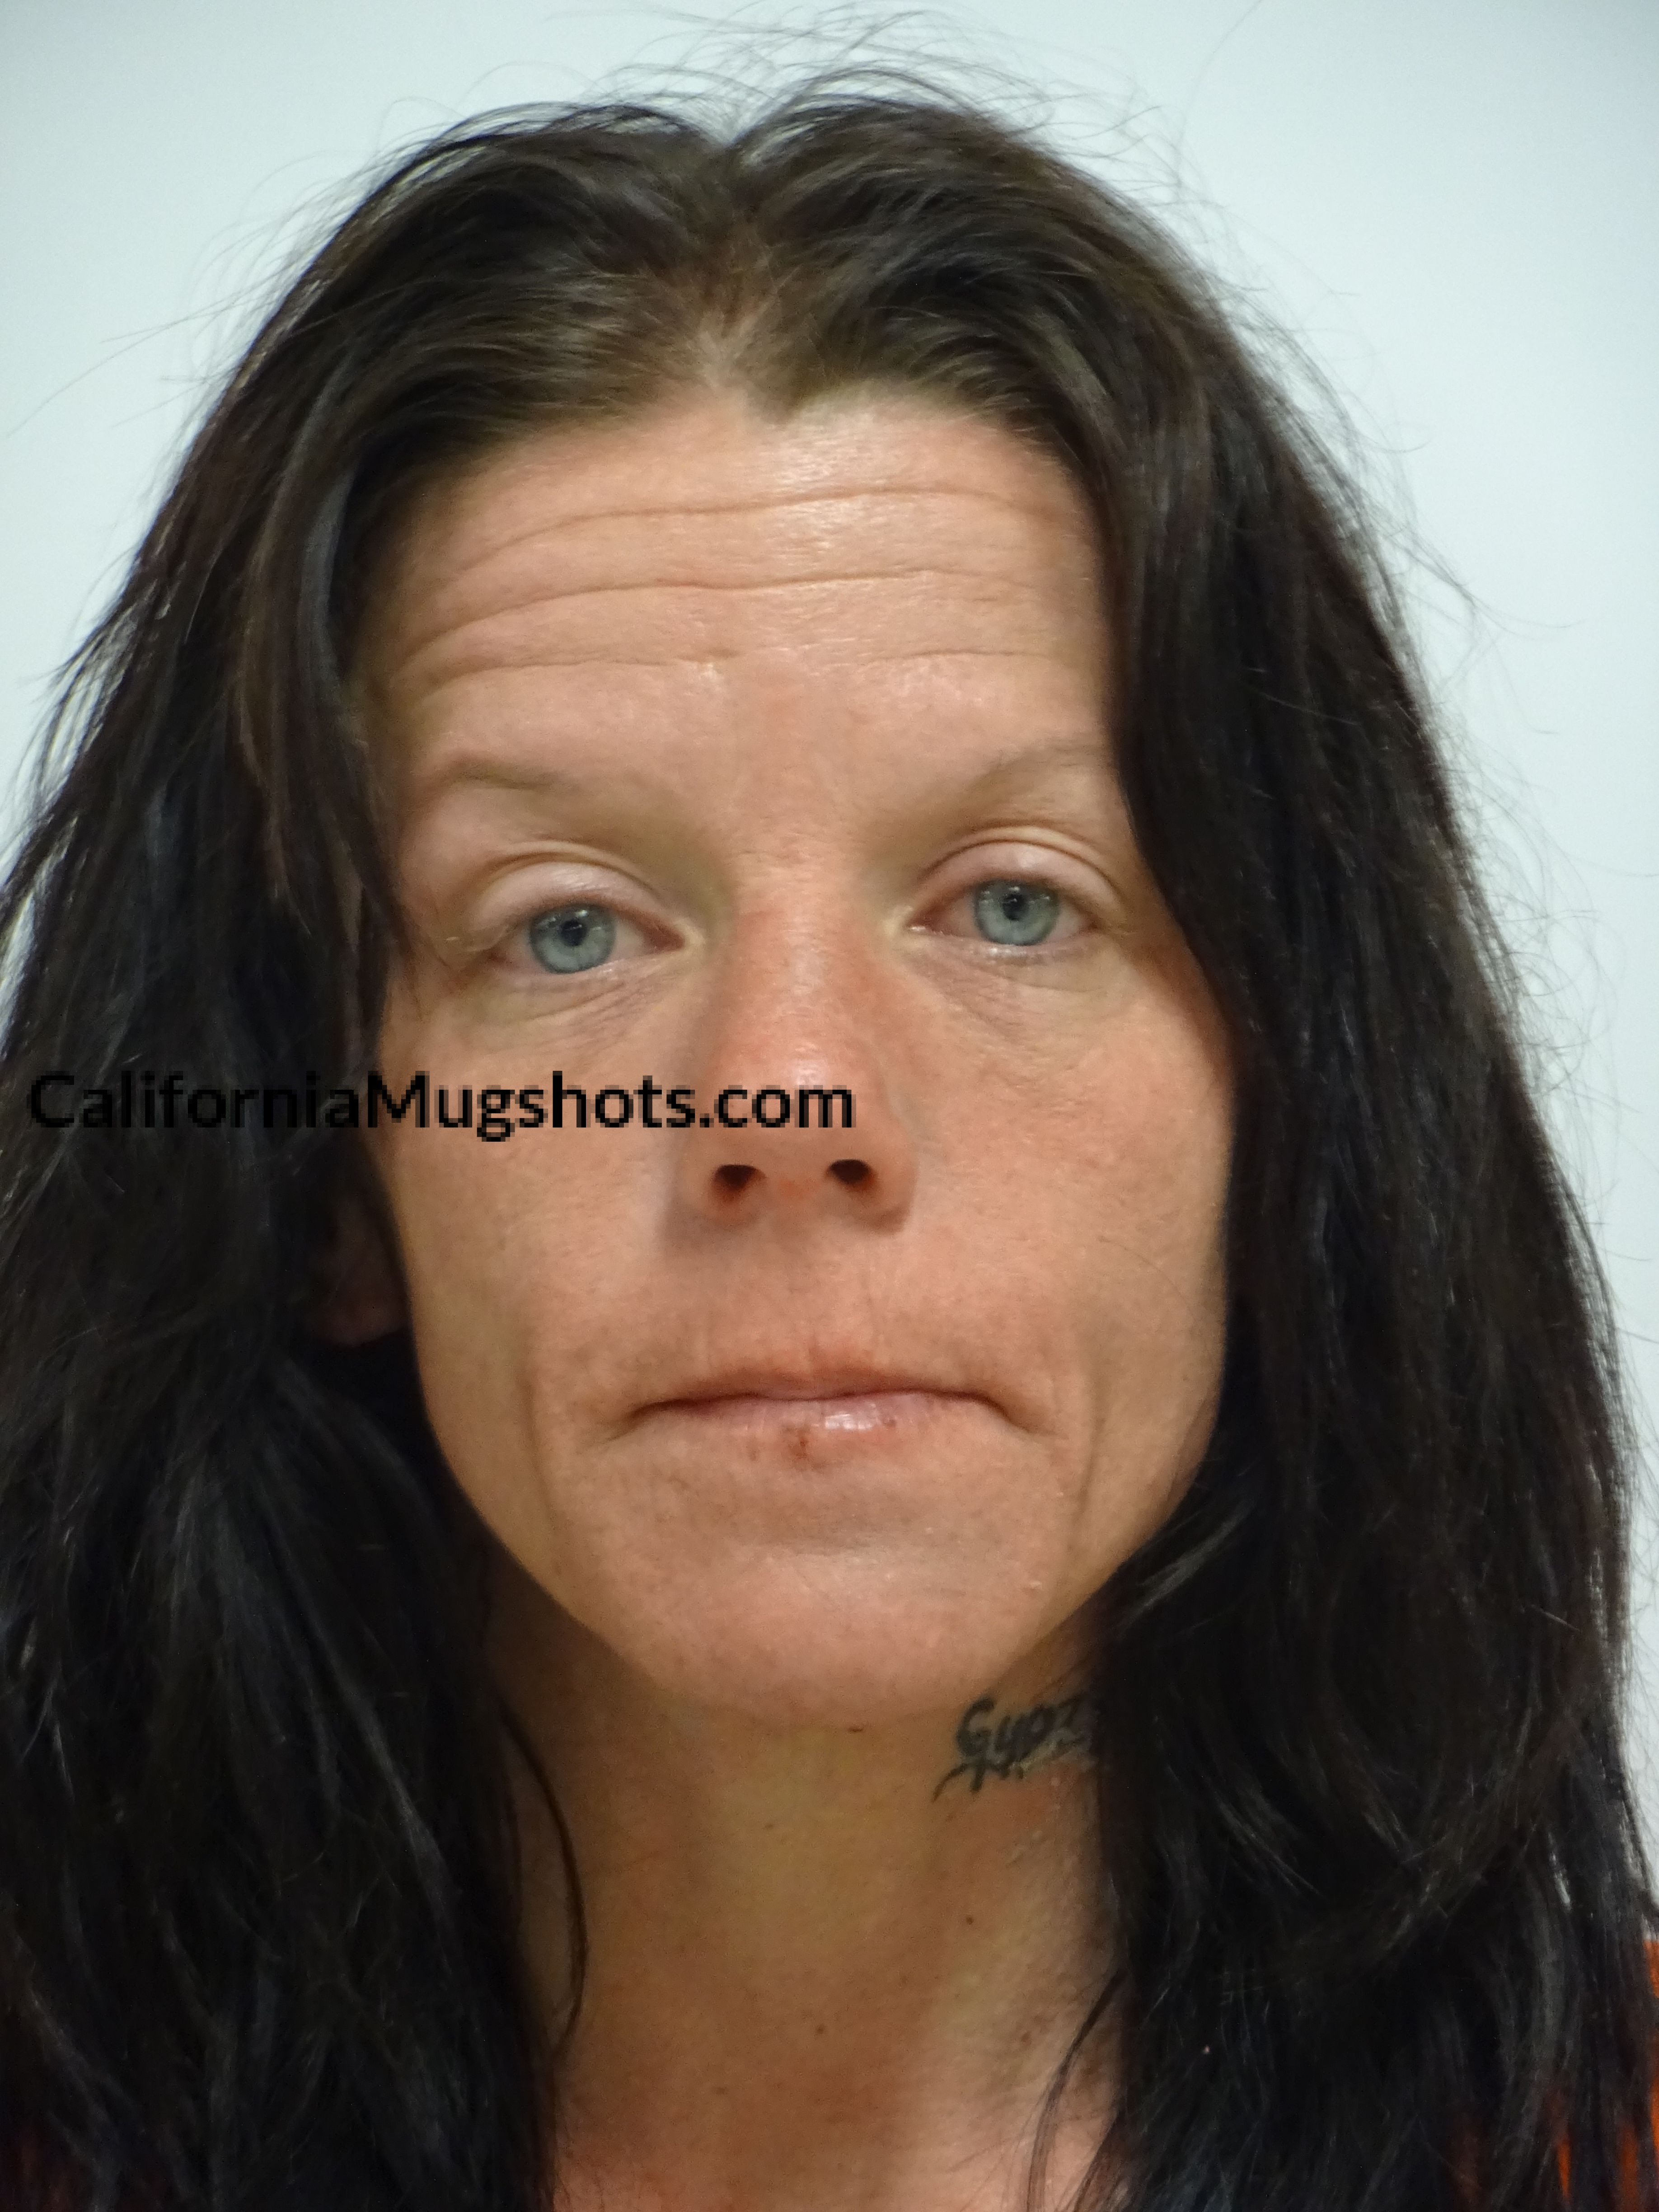 Sarah Jeffers arrested in Lake County,CA